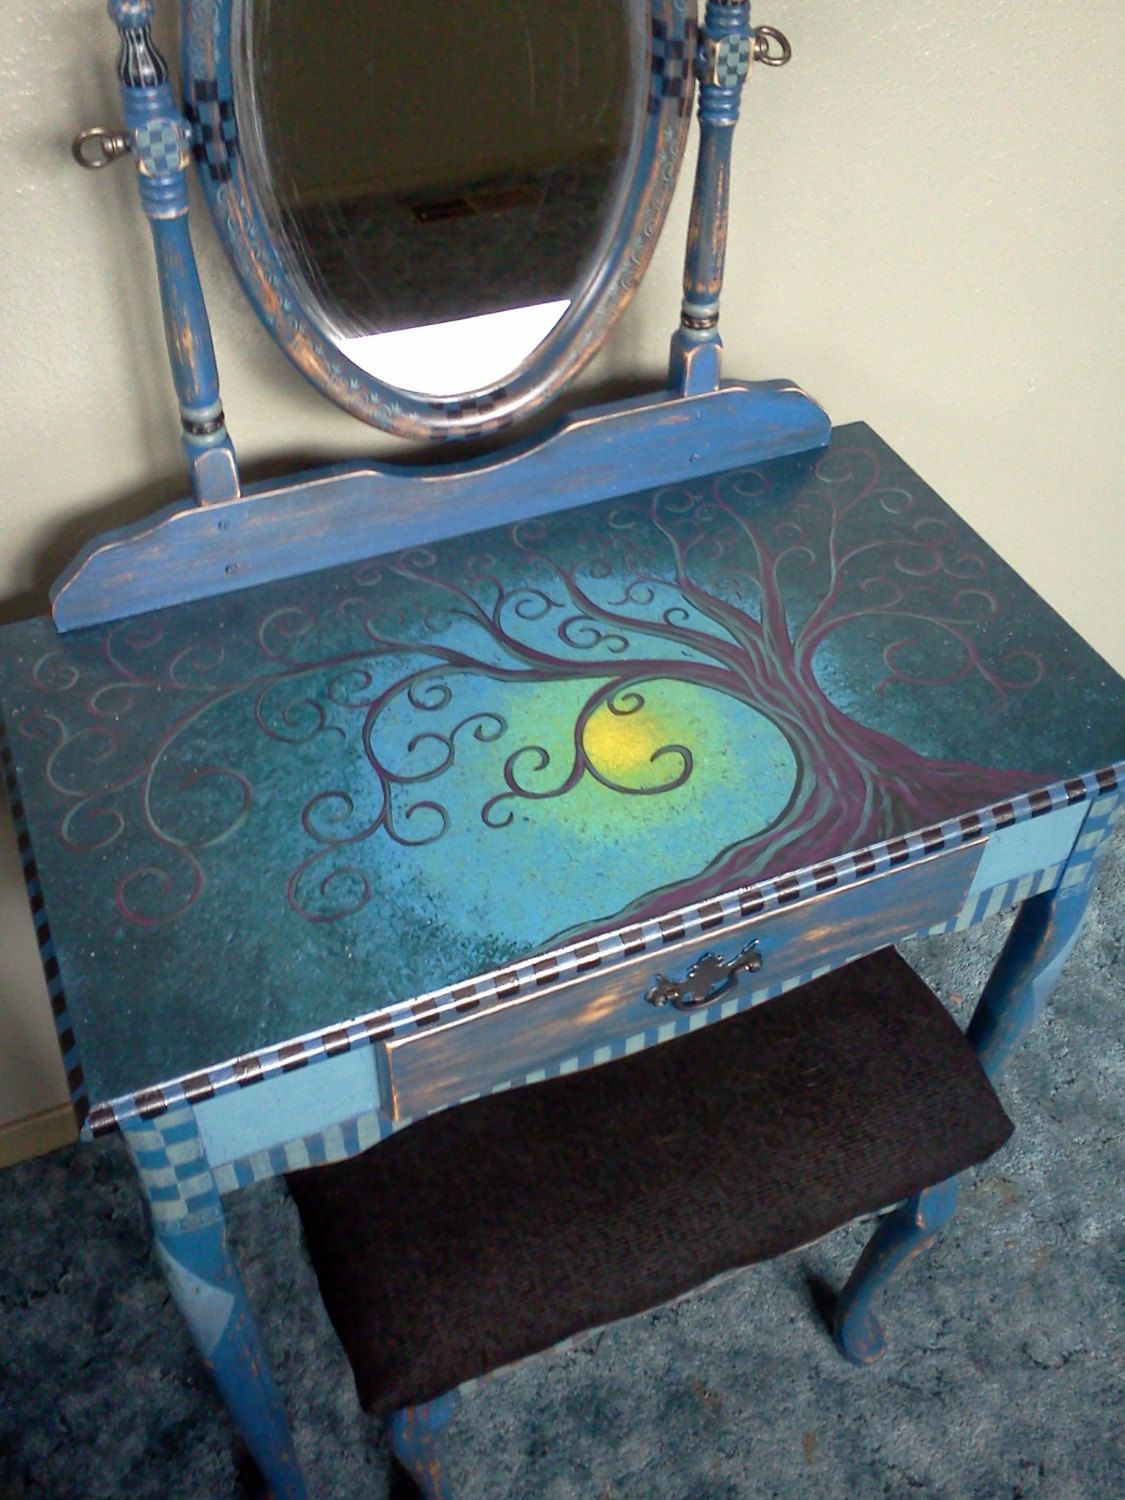 Hand Painted Furniture Vanity Mirror And Bench Shabby Chic Artistic Funky Ooak Blue Black